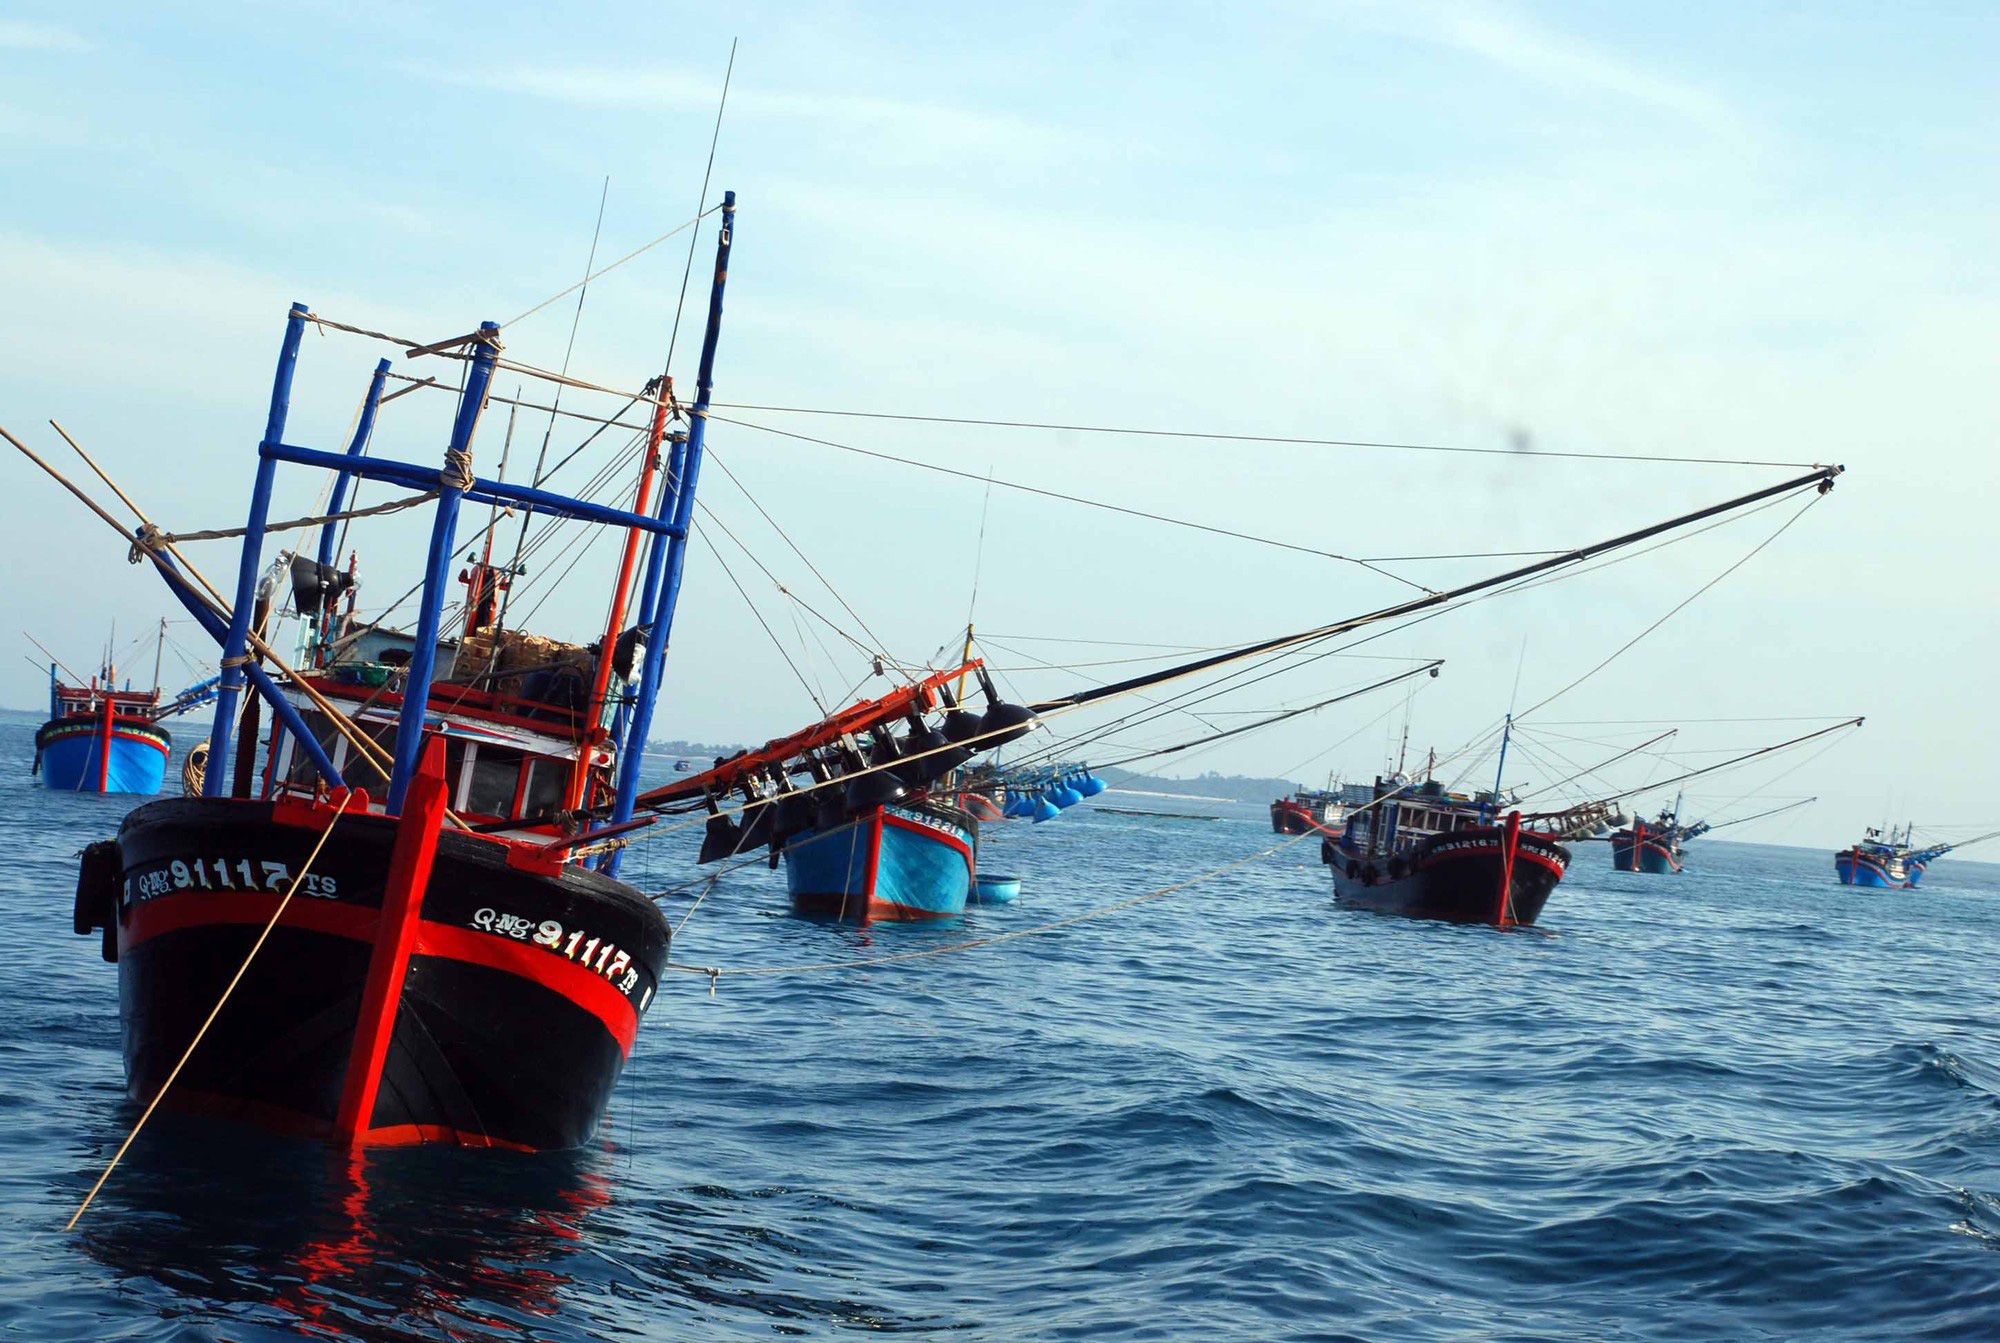 US 'seriously concerned' by China's sinking of Vietnamese fishing boat